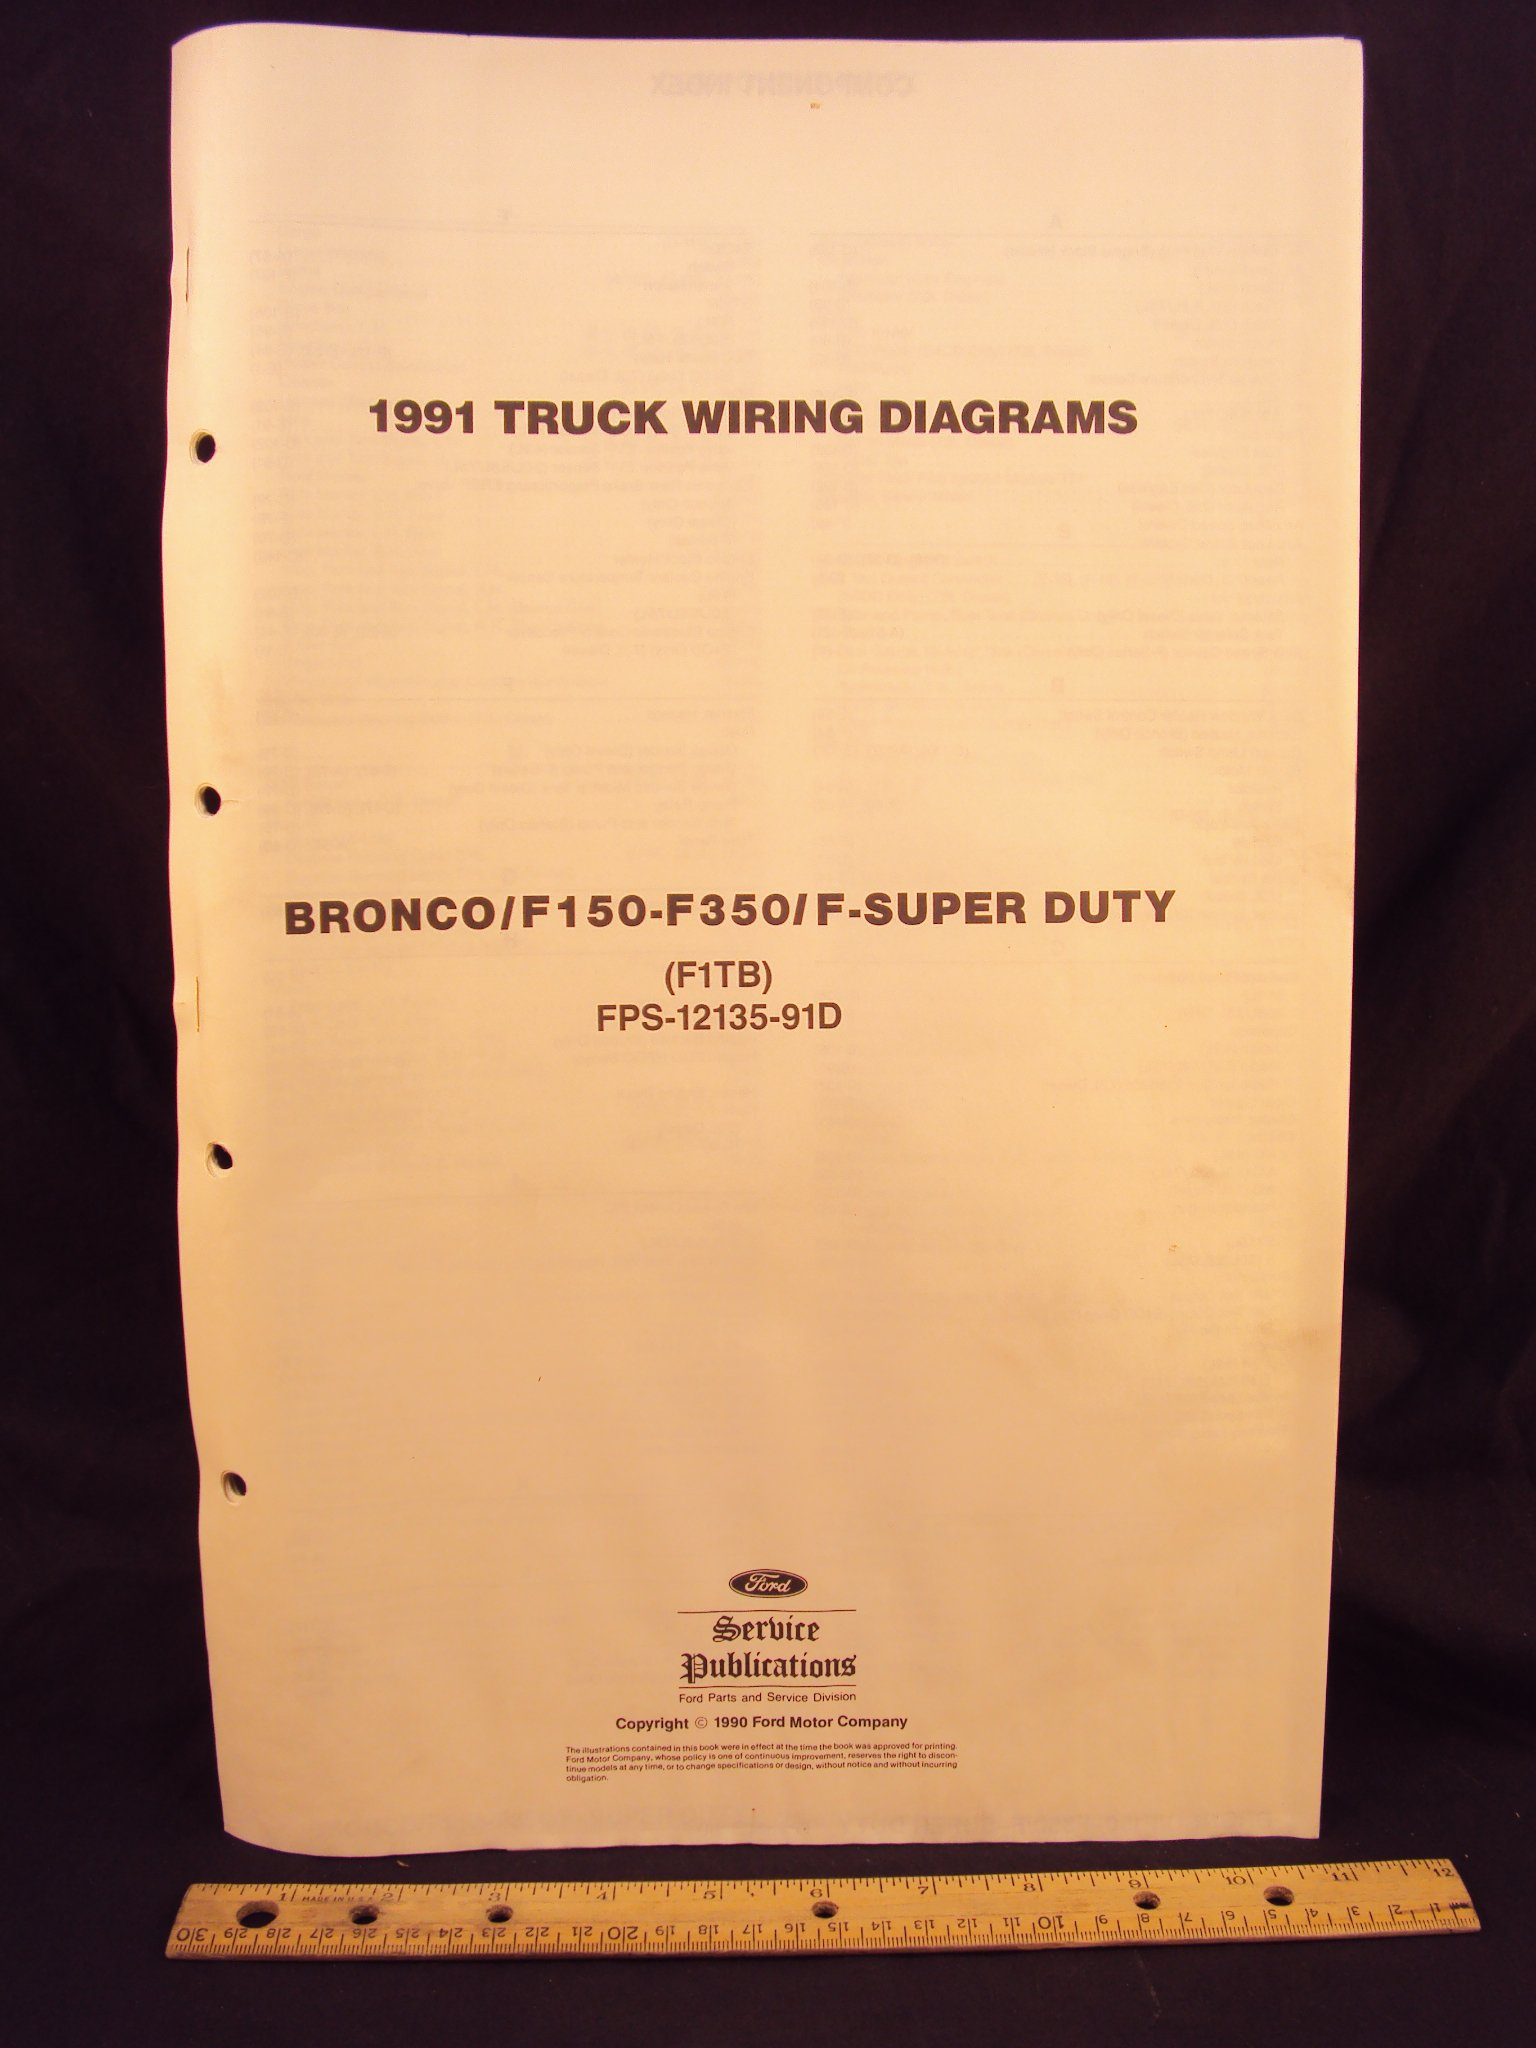 1991 FORD F-150, F250, F350 Series Truck, Bronco, & Super ...  Ford F Wiring Diagram on ford super duty, 1989 ford wiring diagram, ford mirror wiring diagram, 01 dodge 1500 wiring diagram, ford 7 pin wiring diagram, 1987 ford e350 wiring diagram, ford oxygen sensor wiring 1990, ford fairlane wiring diagram, 1956 ford wiring diagram, ford truck electrical diagrams, ford f-350 4x4 wiring diagrams, f250 wiring diagram, 79 ford wiring diagram, ford e 450 wiring diagrams, ford aerostar wiring diagram, ford alternator plug wiring diagram, 86 ford wiring diagram, ford econoline van wiring diagram, ford falcon wiring-diagram, ford electrical wiring diagrams,